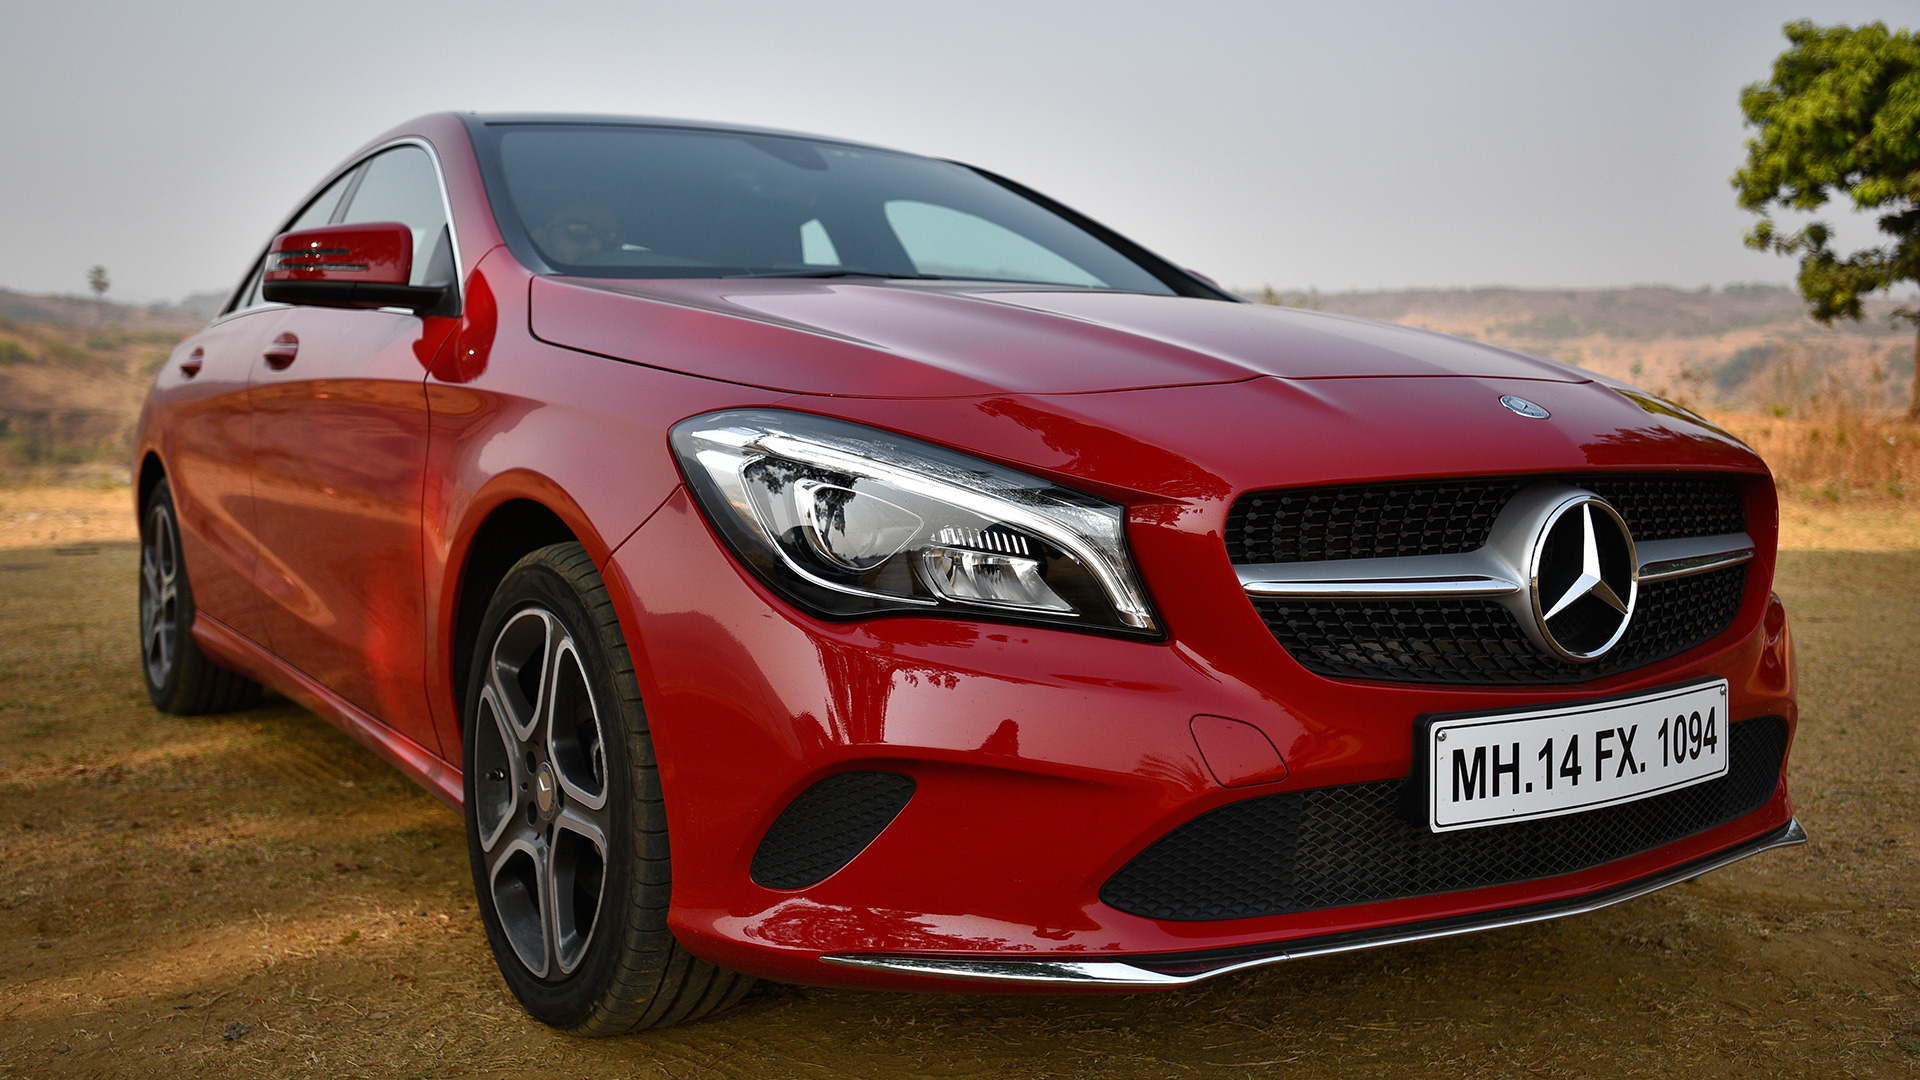 Mercedes benz cla 2017 200 sport price mileage reviews for Mercedes benz cars images